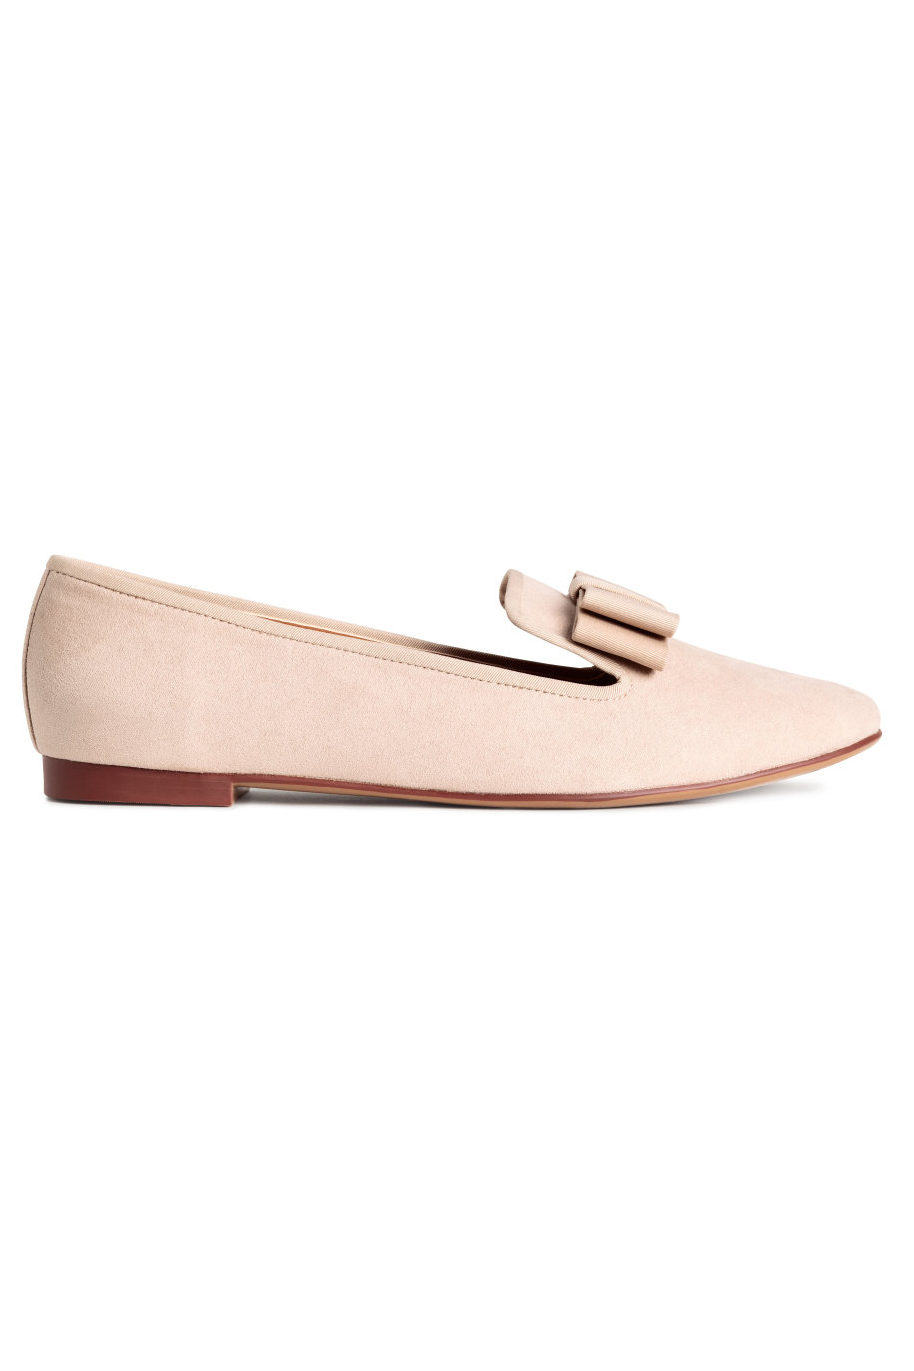 H&M Loafers With Bow